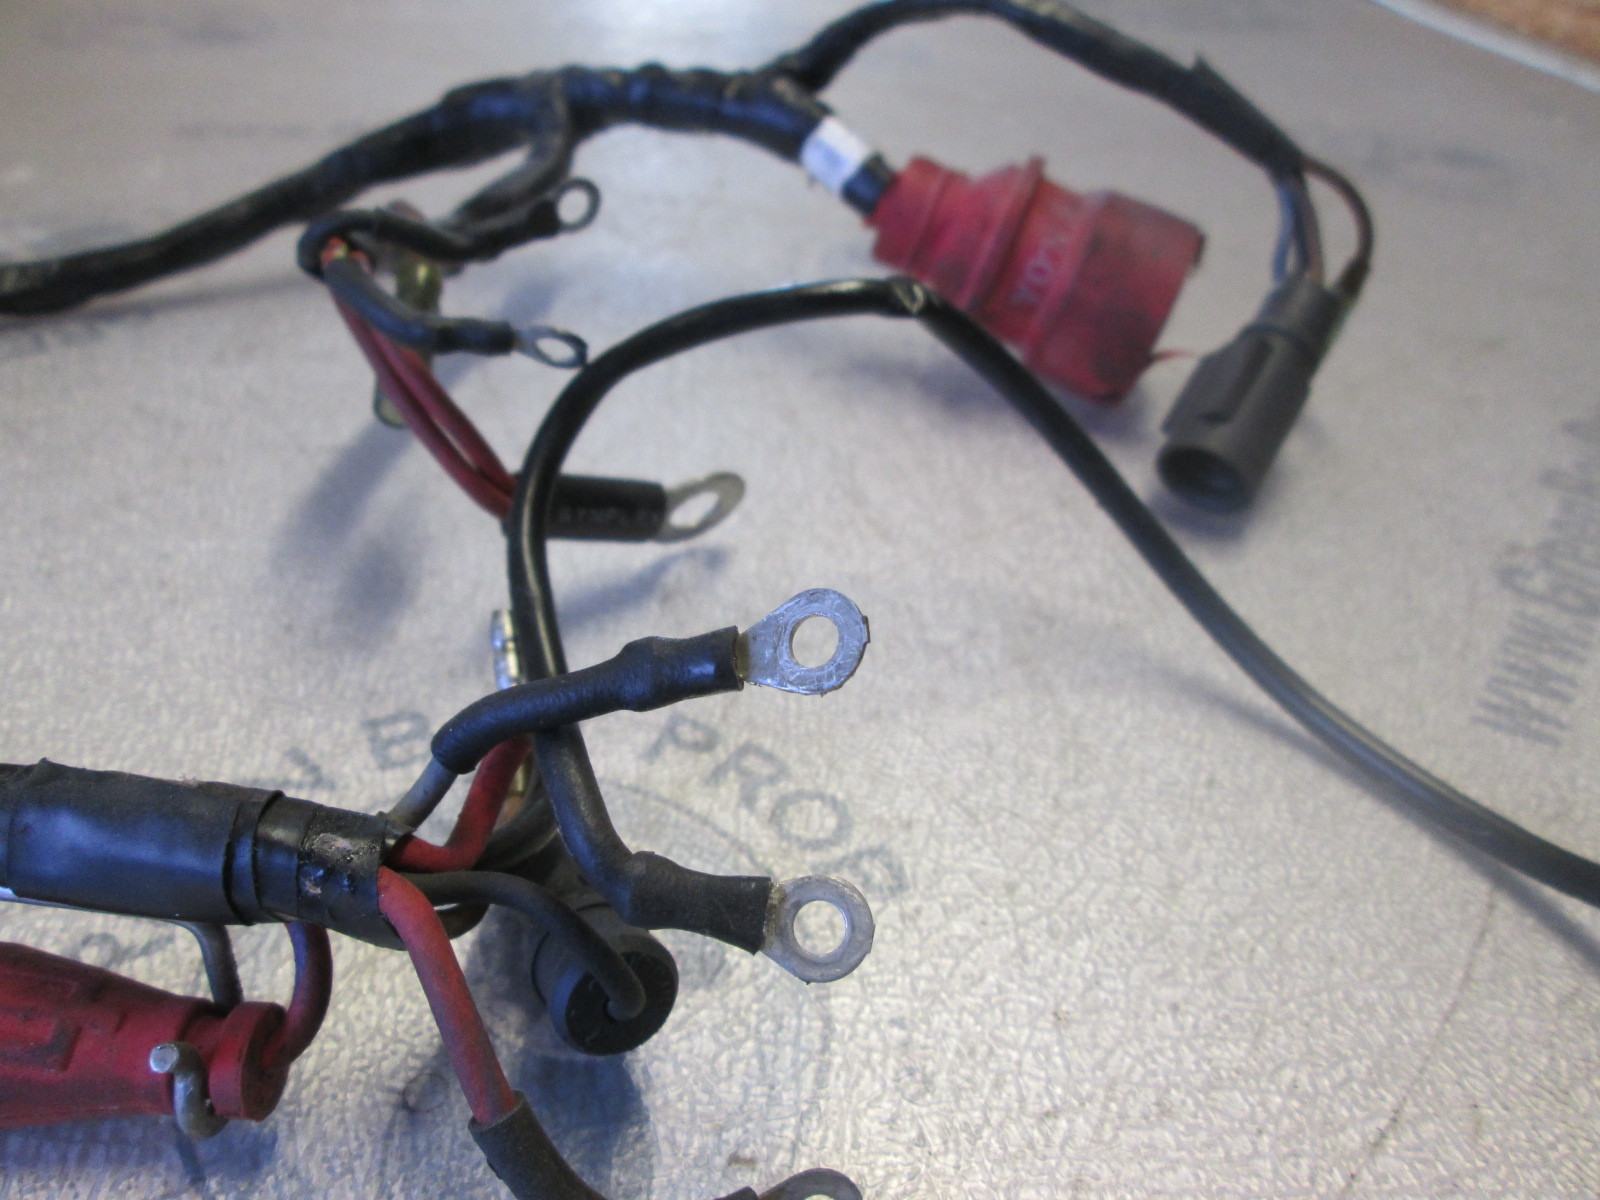 hight resolution of 0583649 0512748 motor cable engine wire harness evinrude johnson 40 50 hp